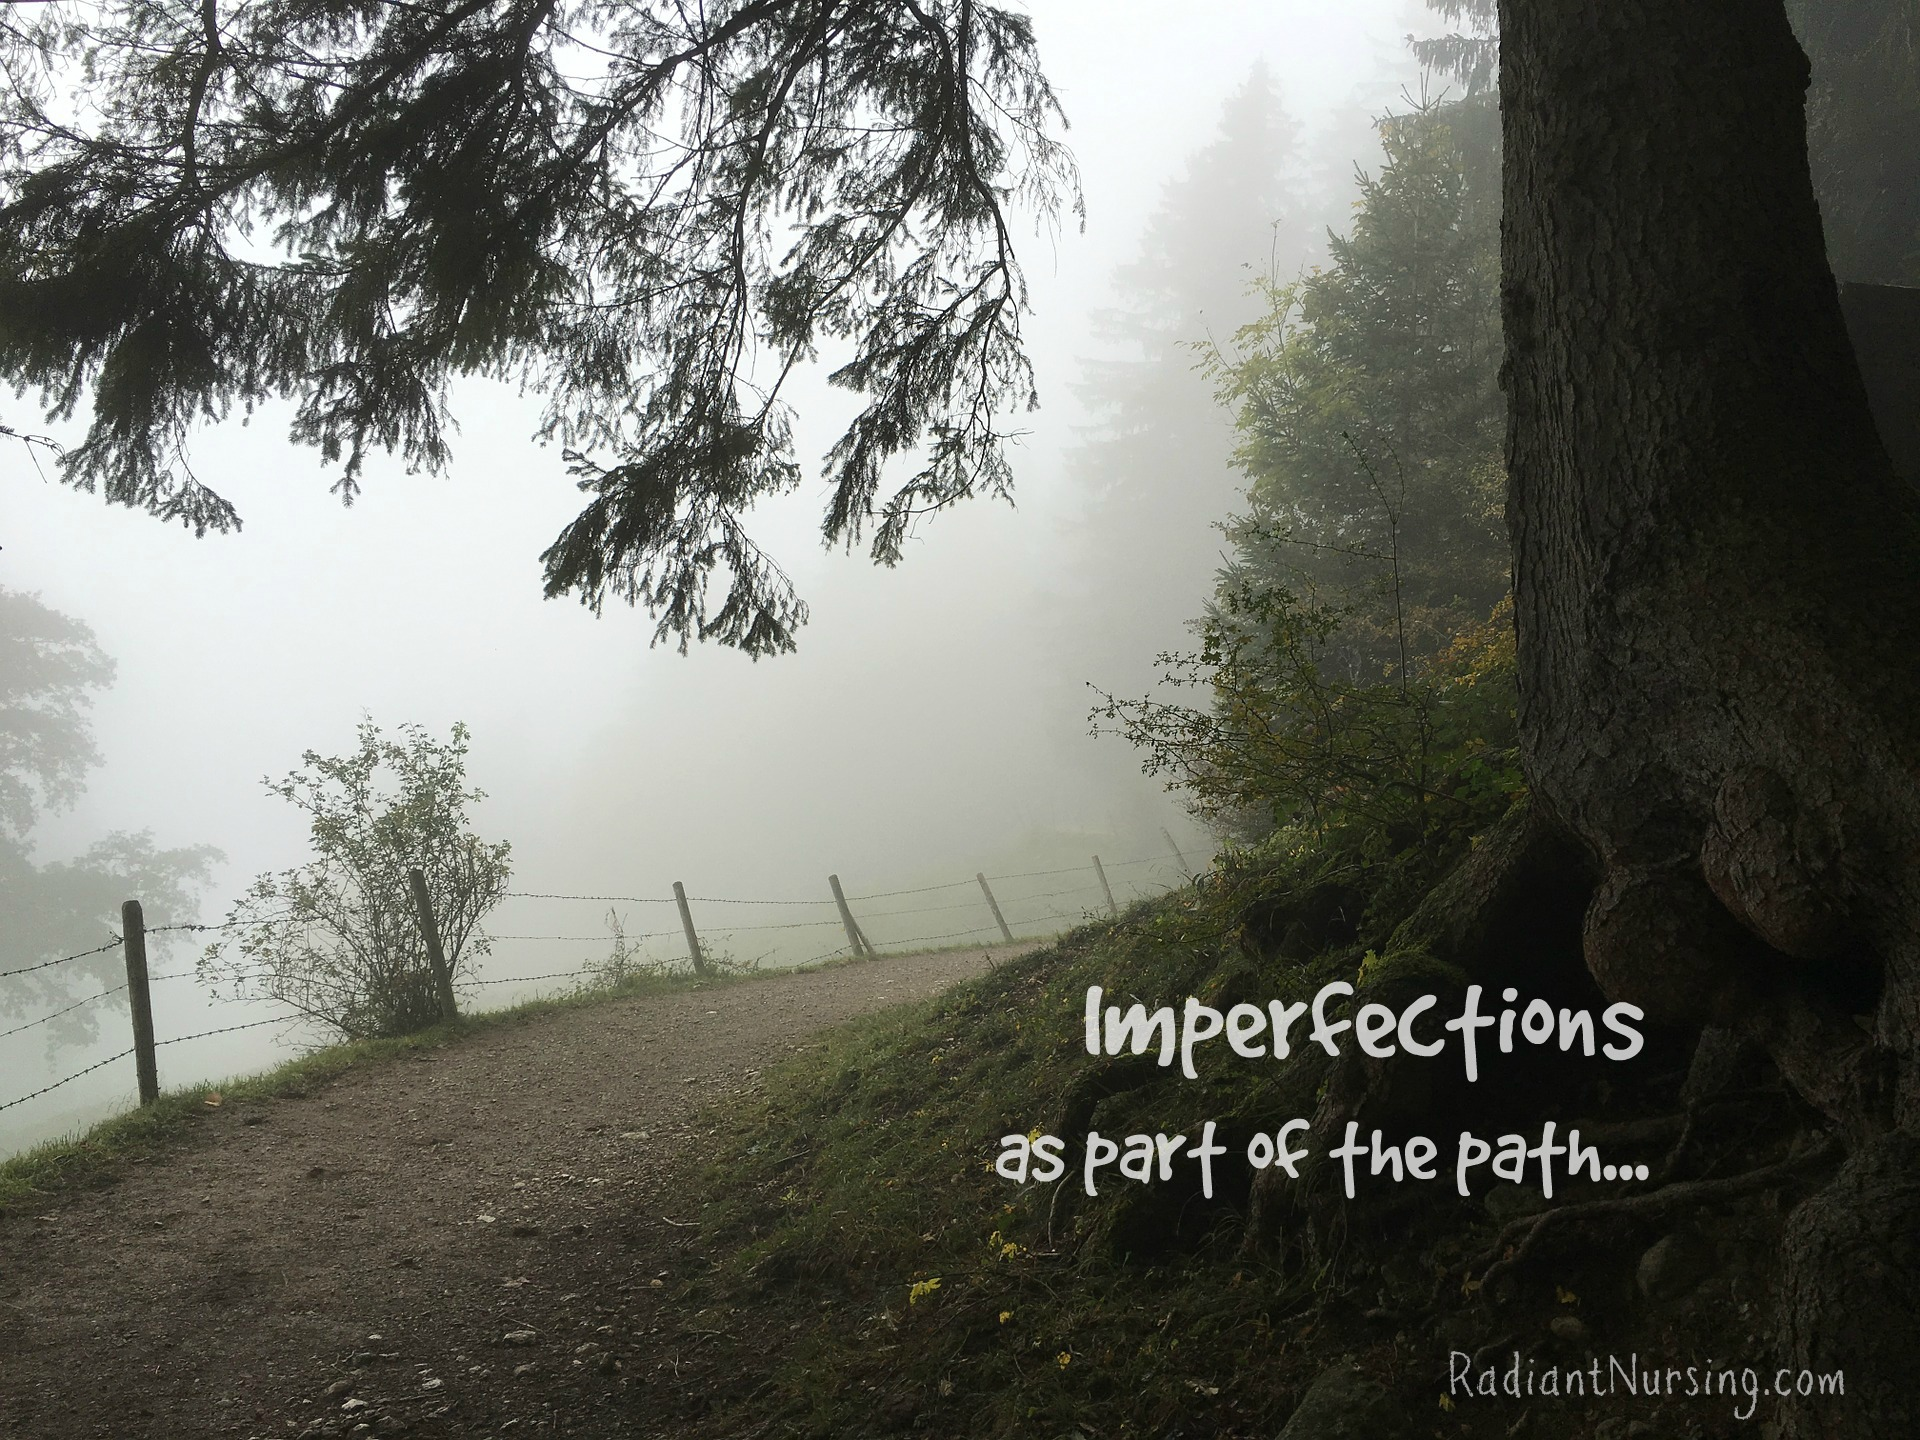 Imperfections as part of the path. Willing to let go of competition, even in our meditations.